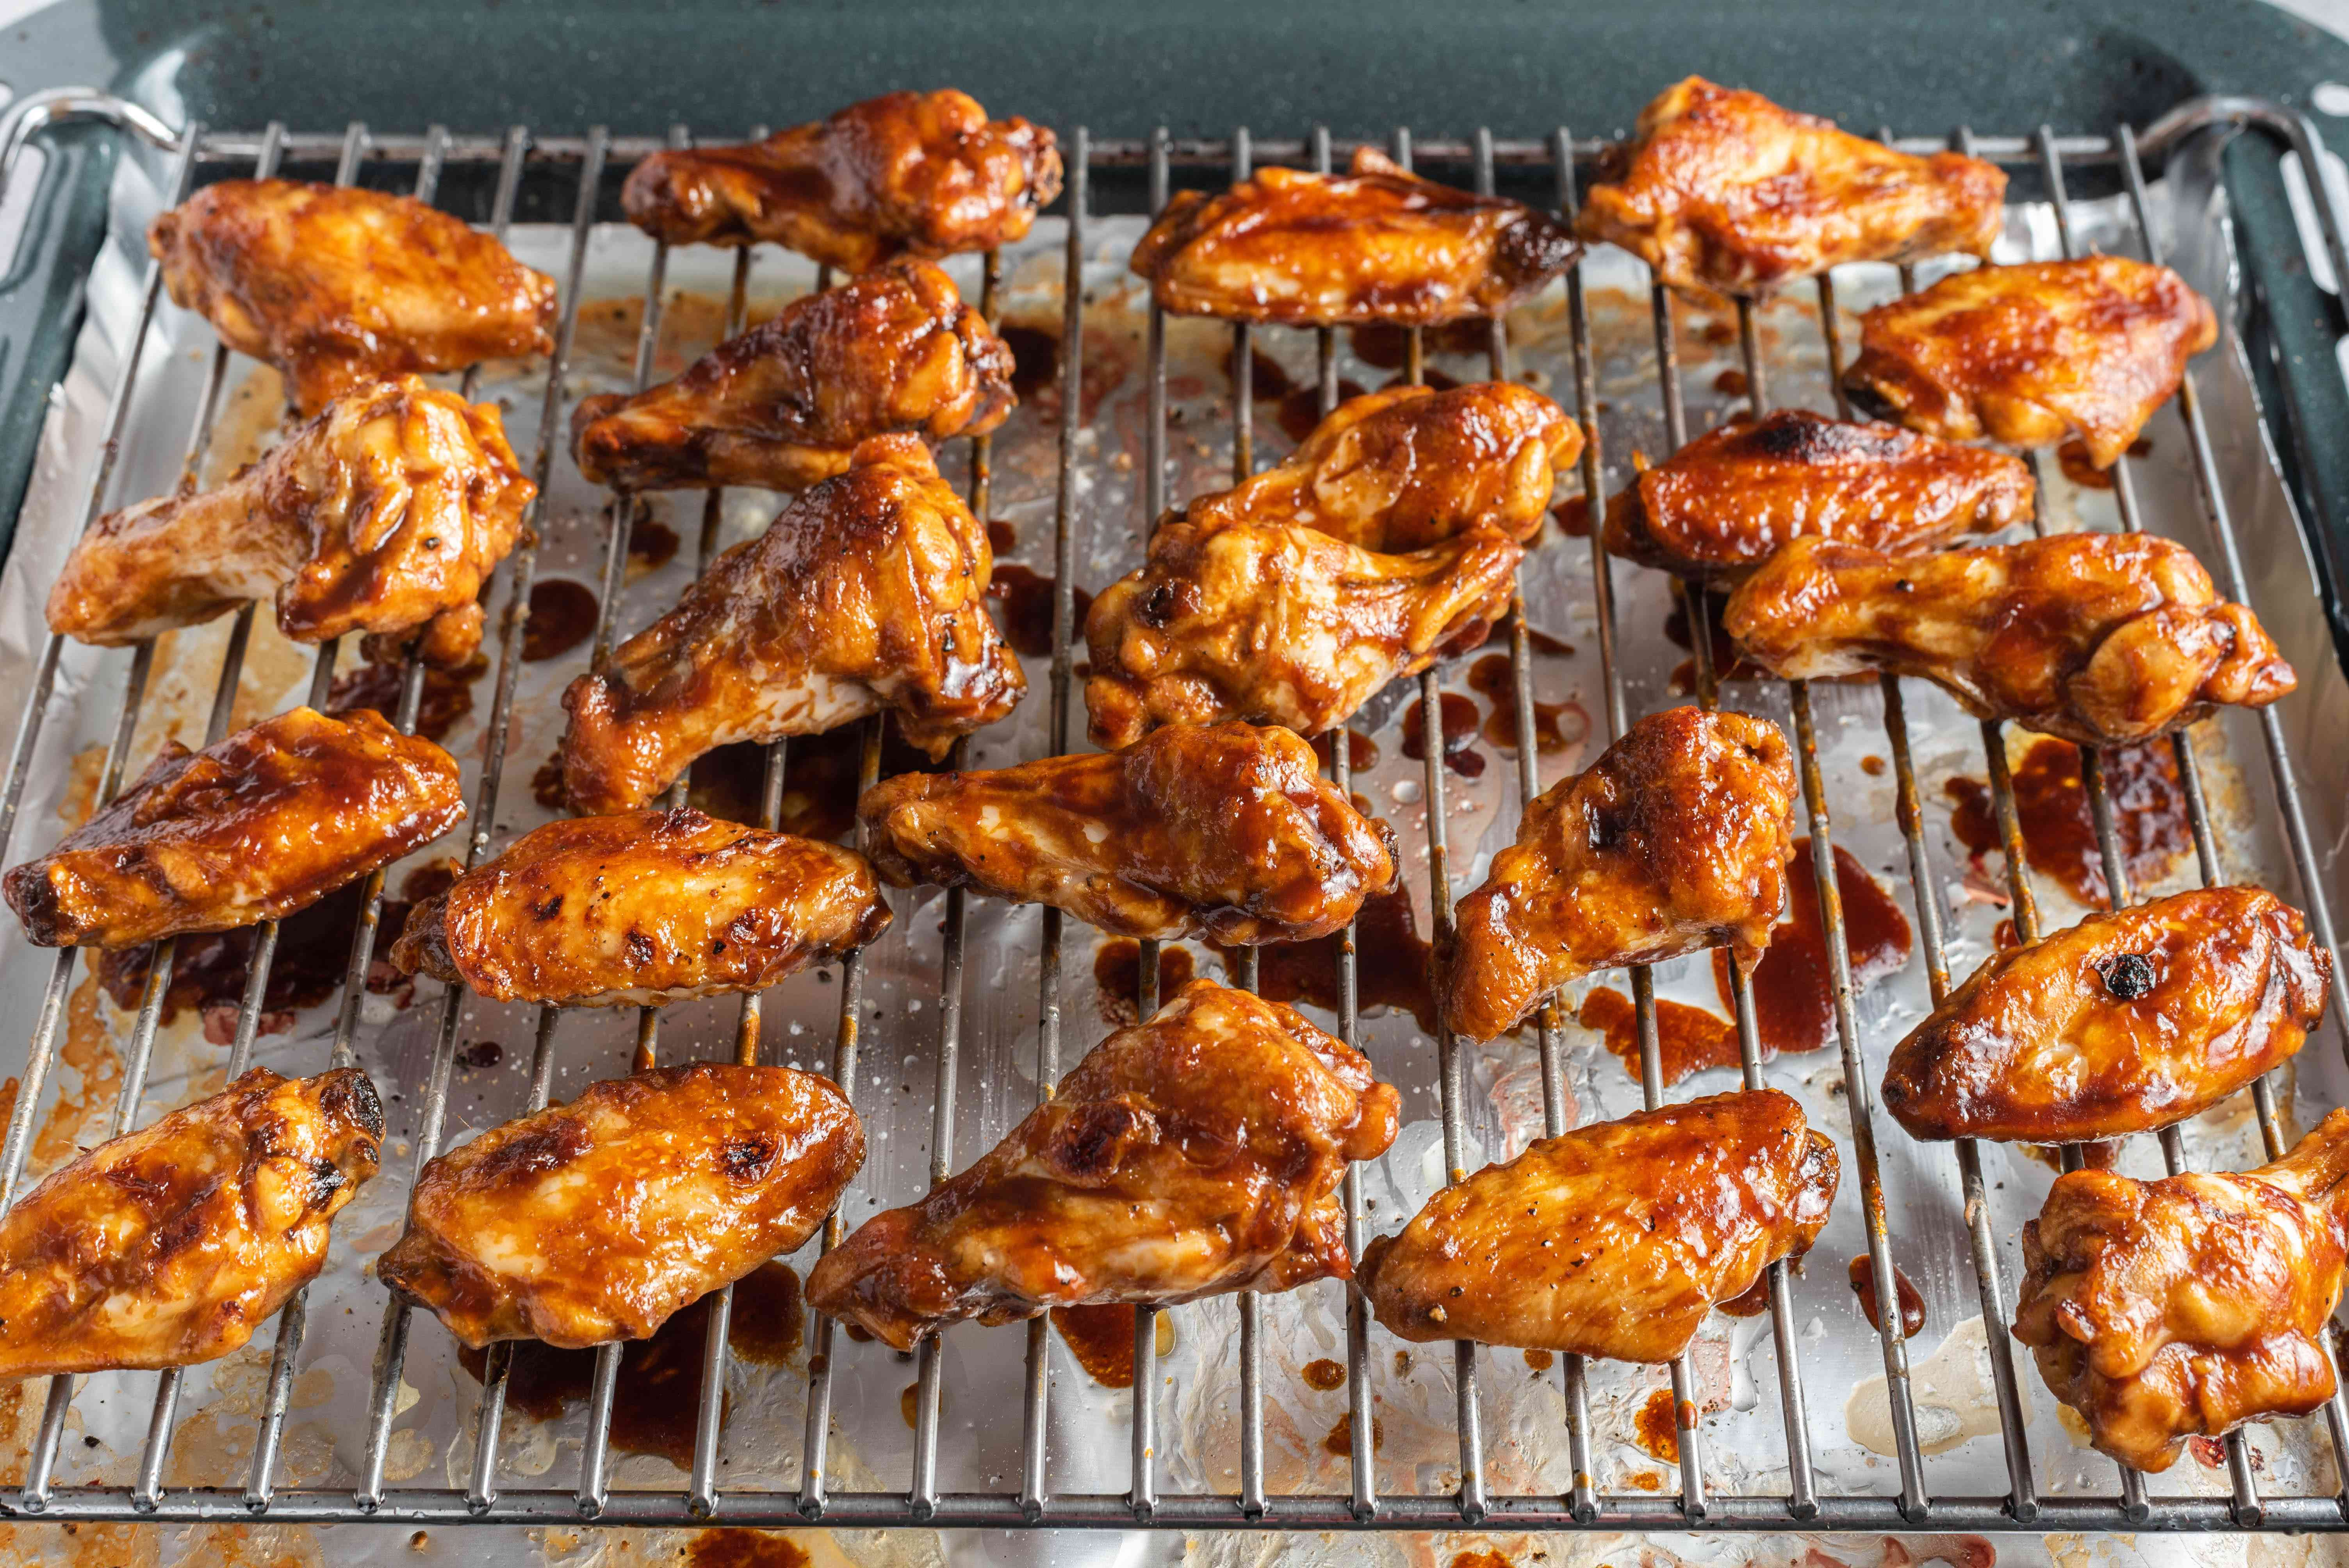 Chicken wings coated in barbecue sauce on a broiling rack